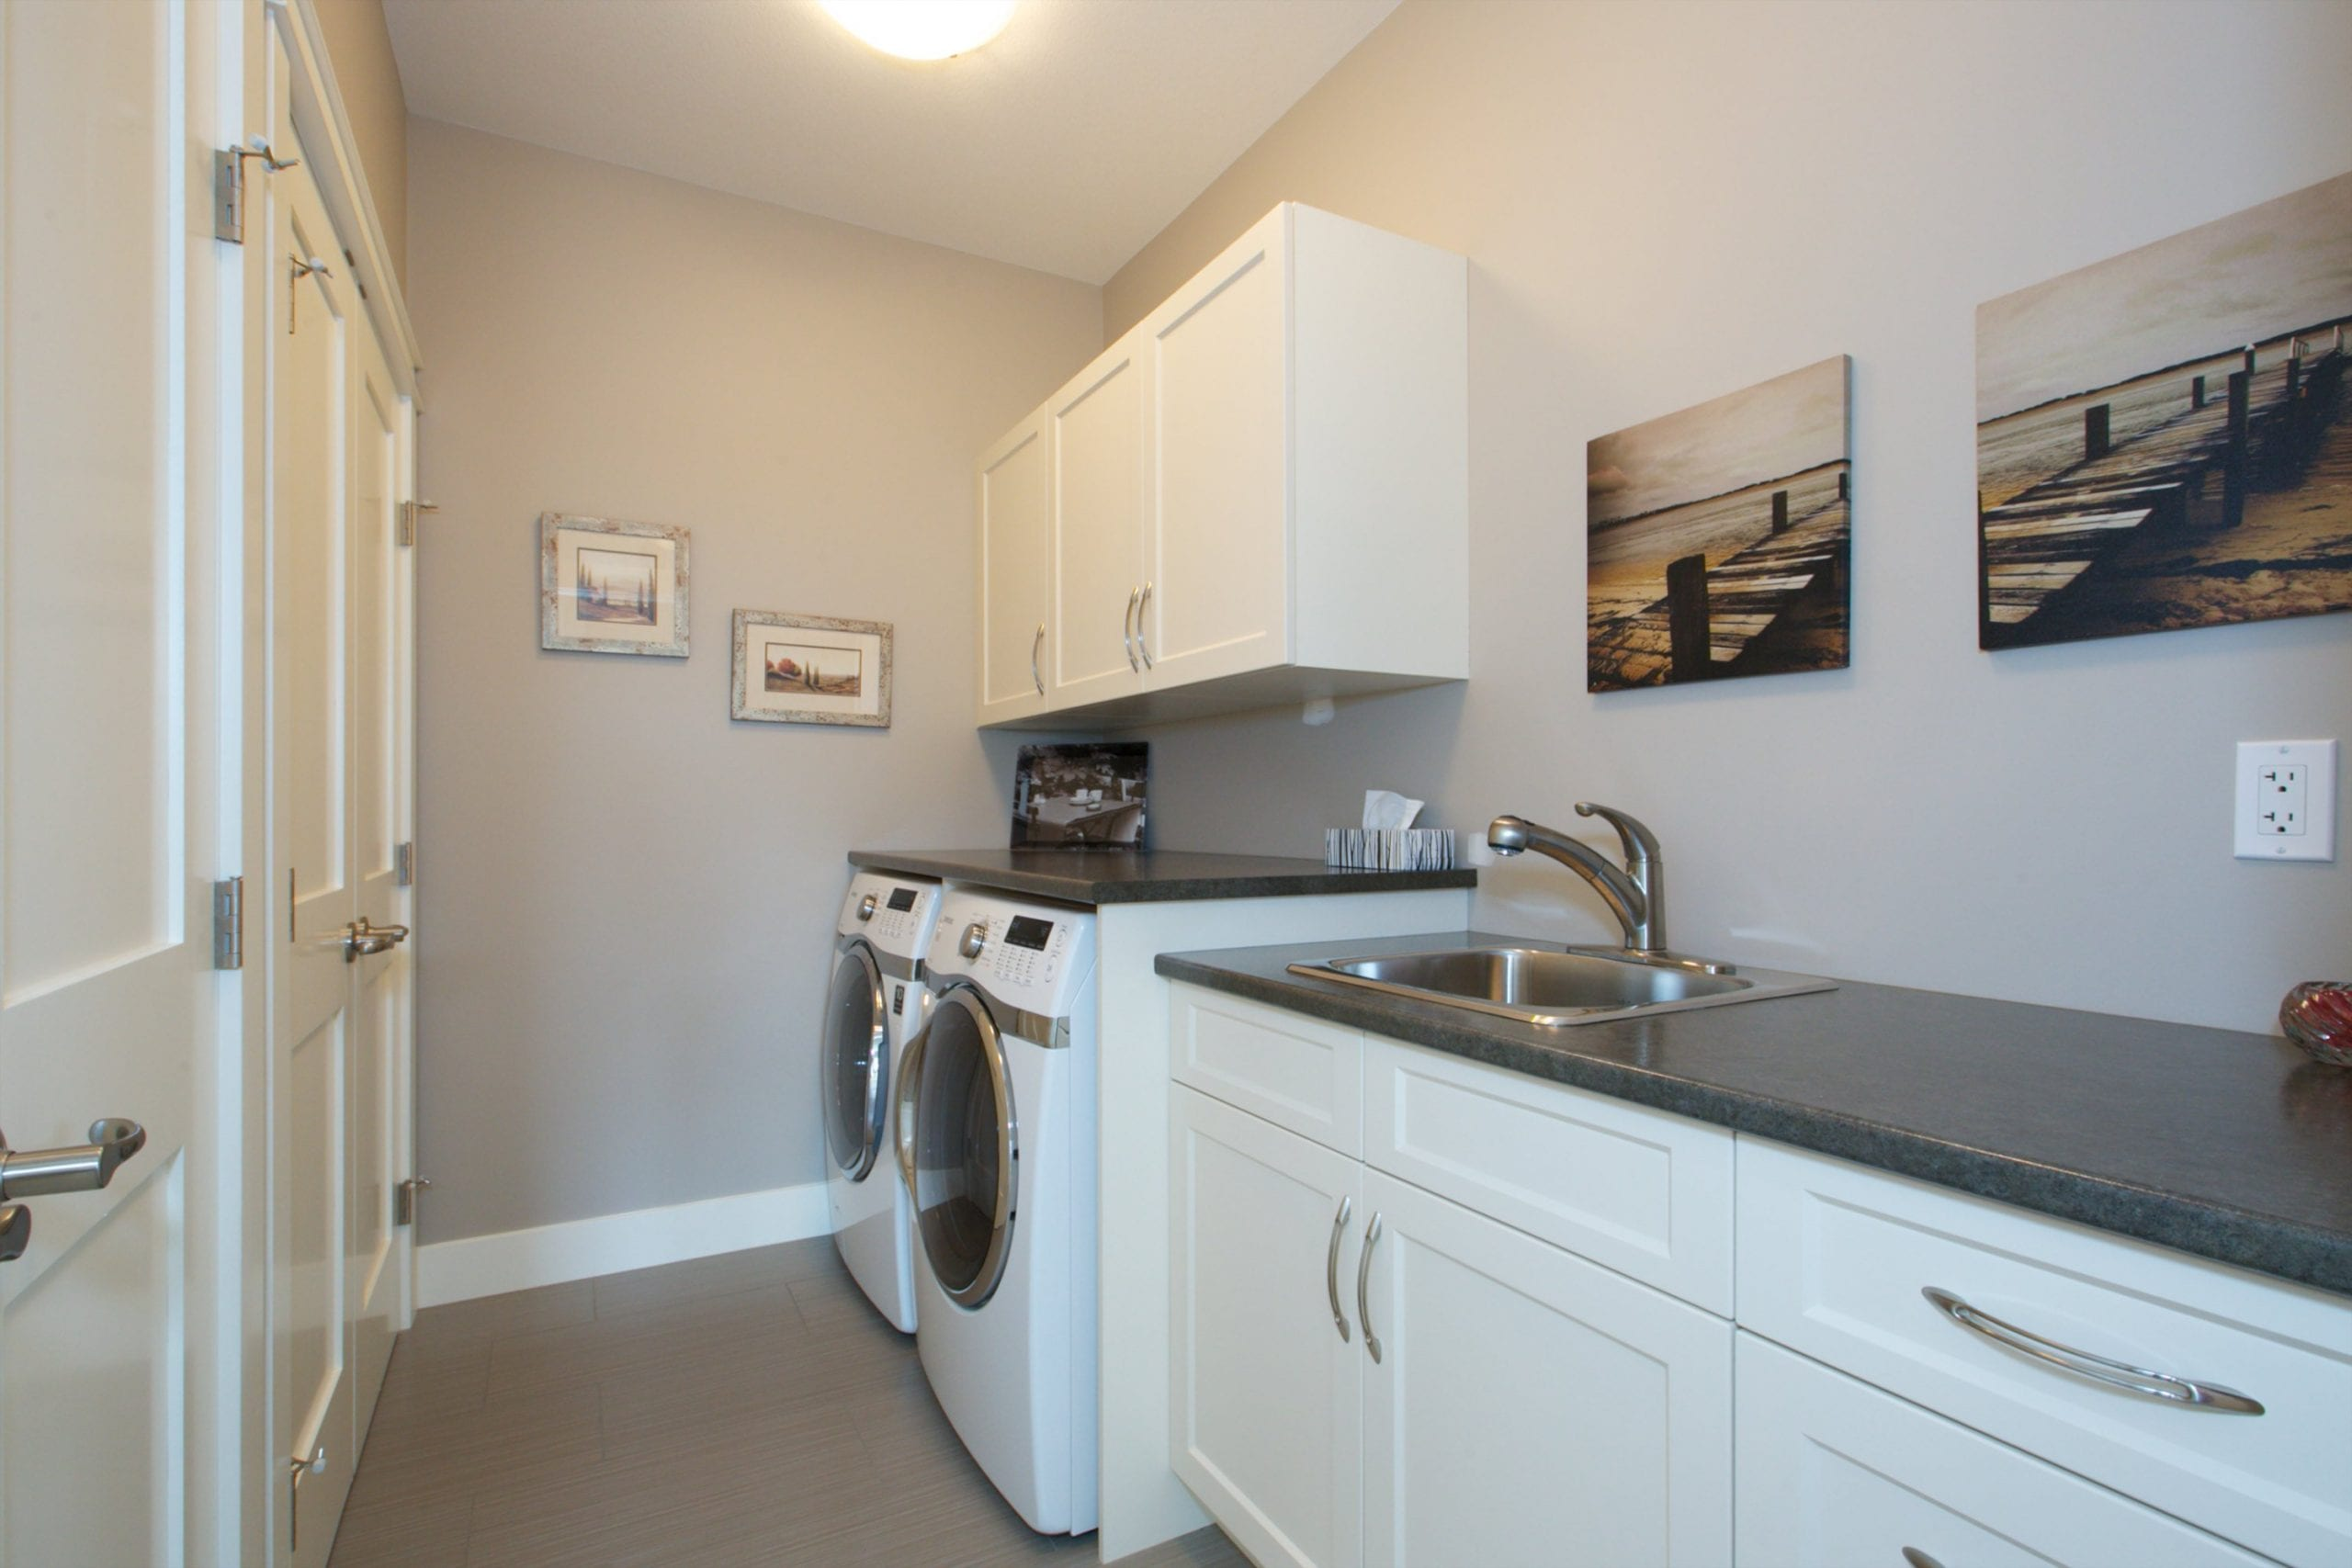 interior shot of west harbour home laundry featuring a sink with cabinetry both below and above a washer and a dryer